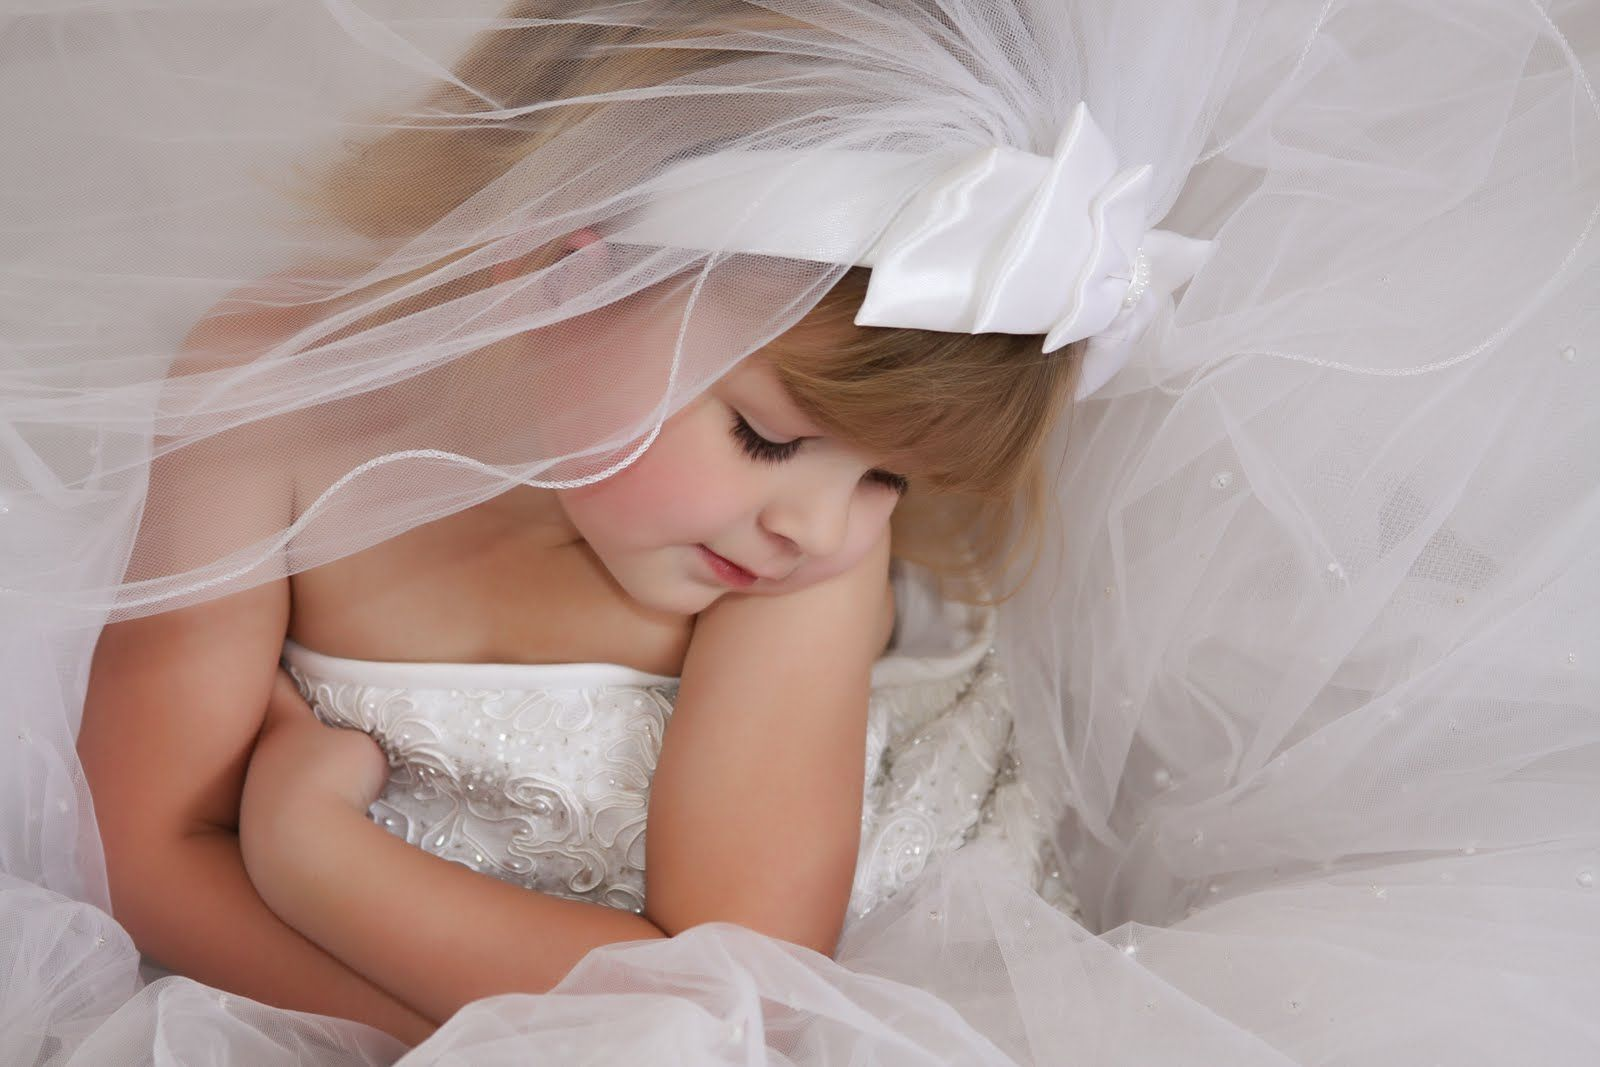 In Mommys Wedding Dress Photo By Torrie Fagan StudiosMy Very Talented Friend The Greater Tampa Bay Florida Area Brandon